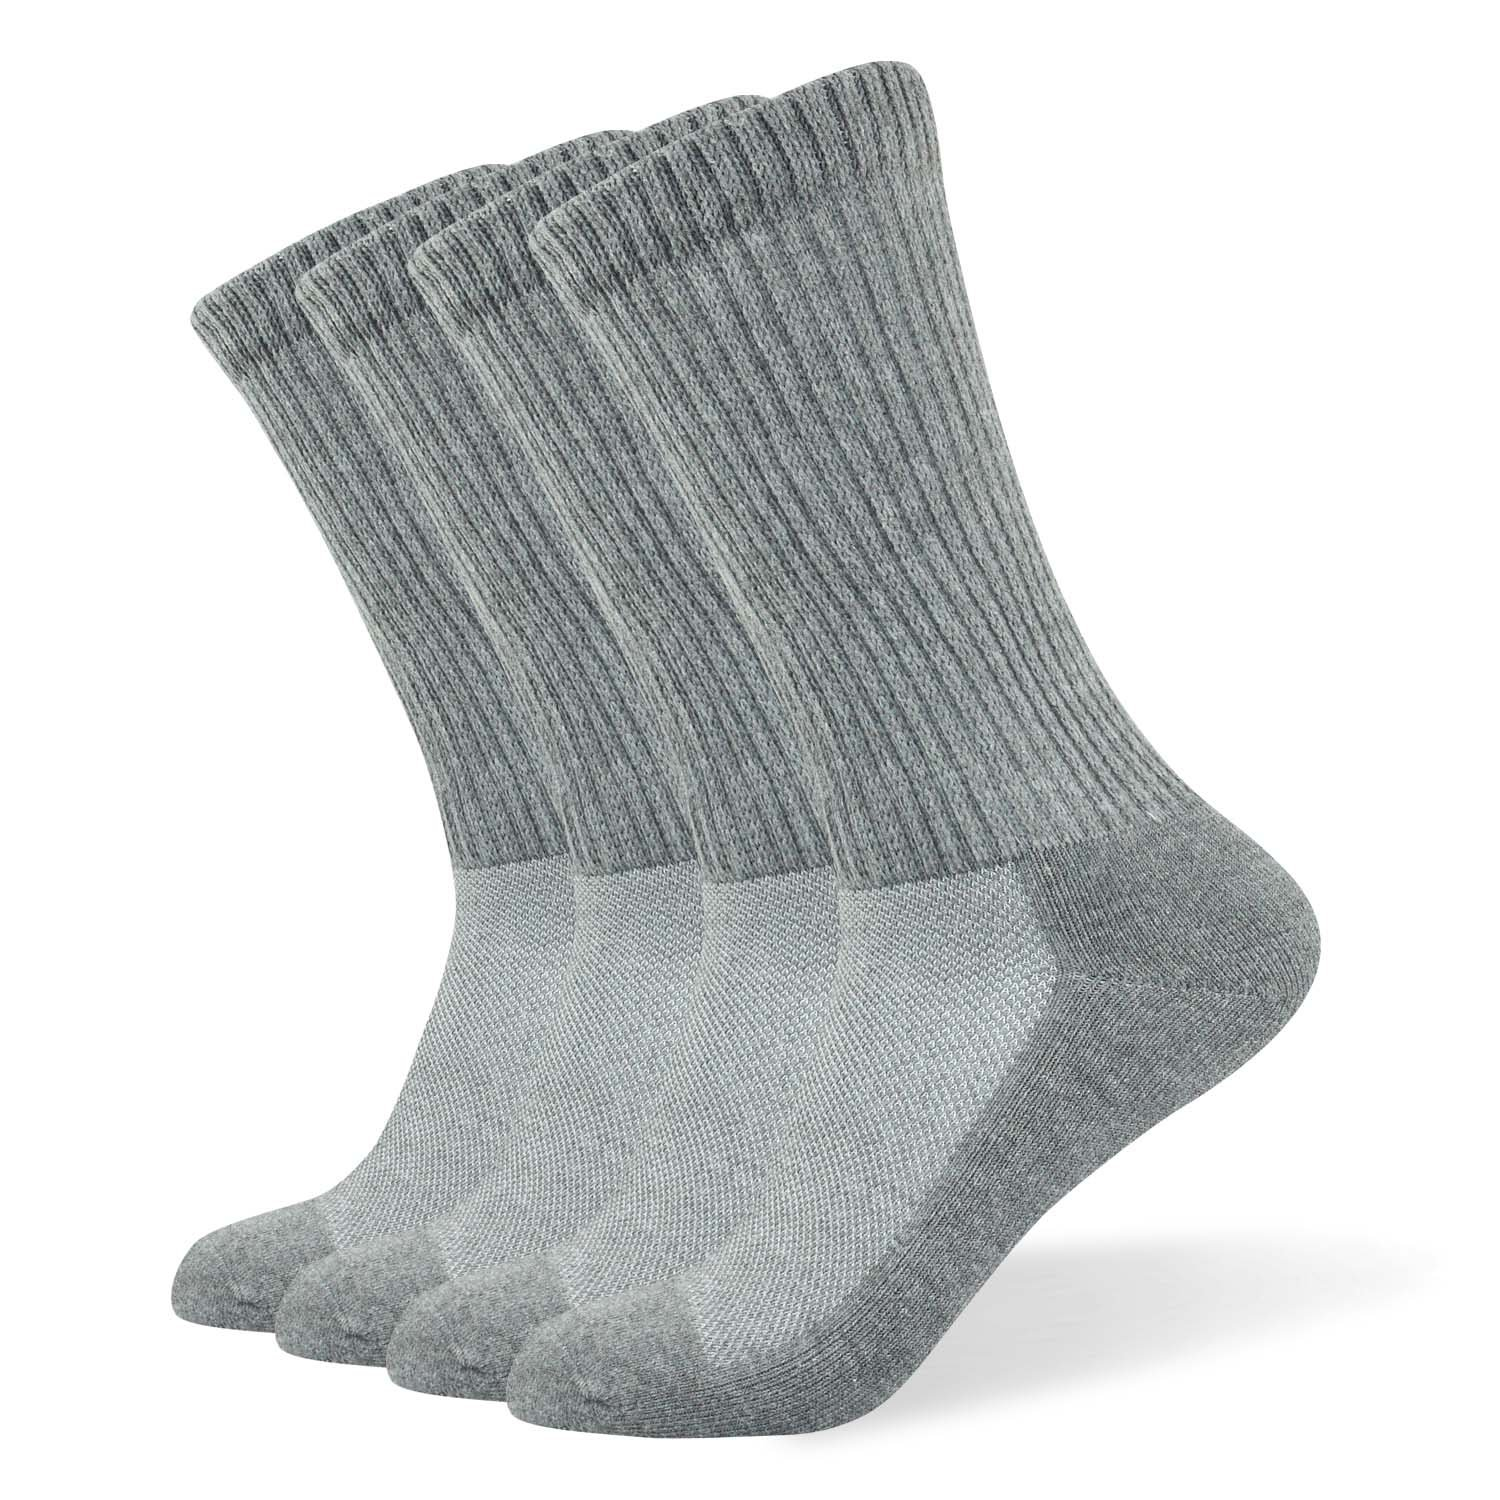 Well Knitting Diabetic Socks for Men & Women, Coolmax Medical Circulation Crew Mid Calf Socks with Seamless Toe, Non-Binding Top, and Padded Sole, 4 Pairs (L,Grey) by WELL KNITTING